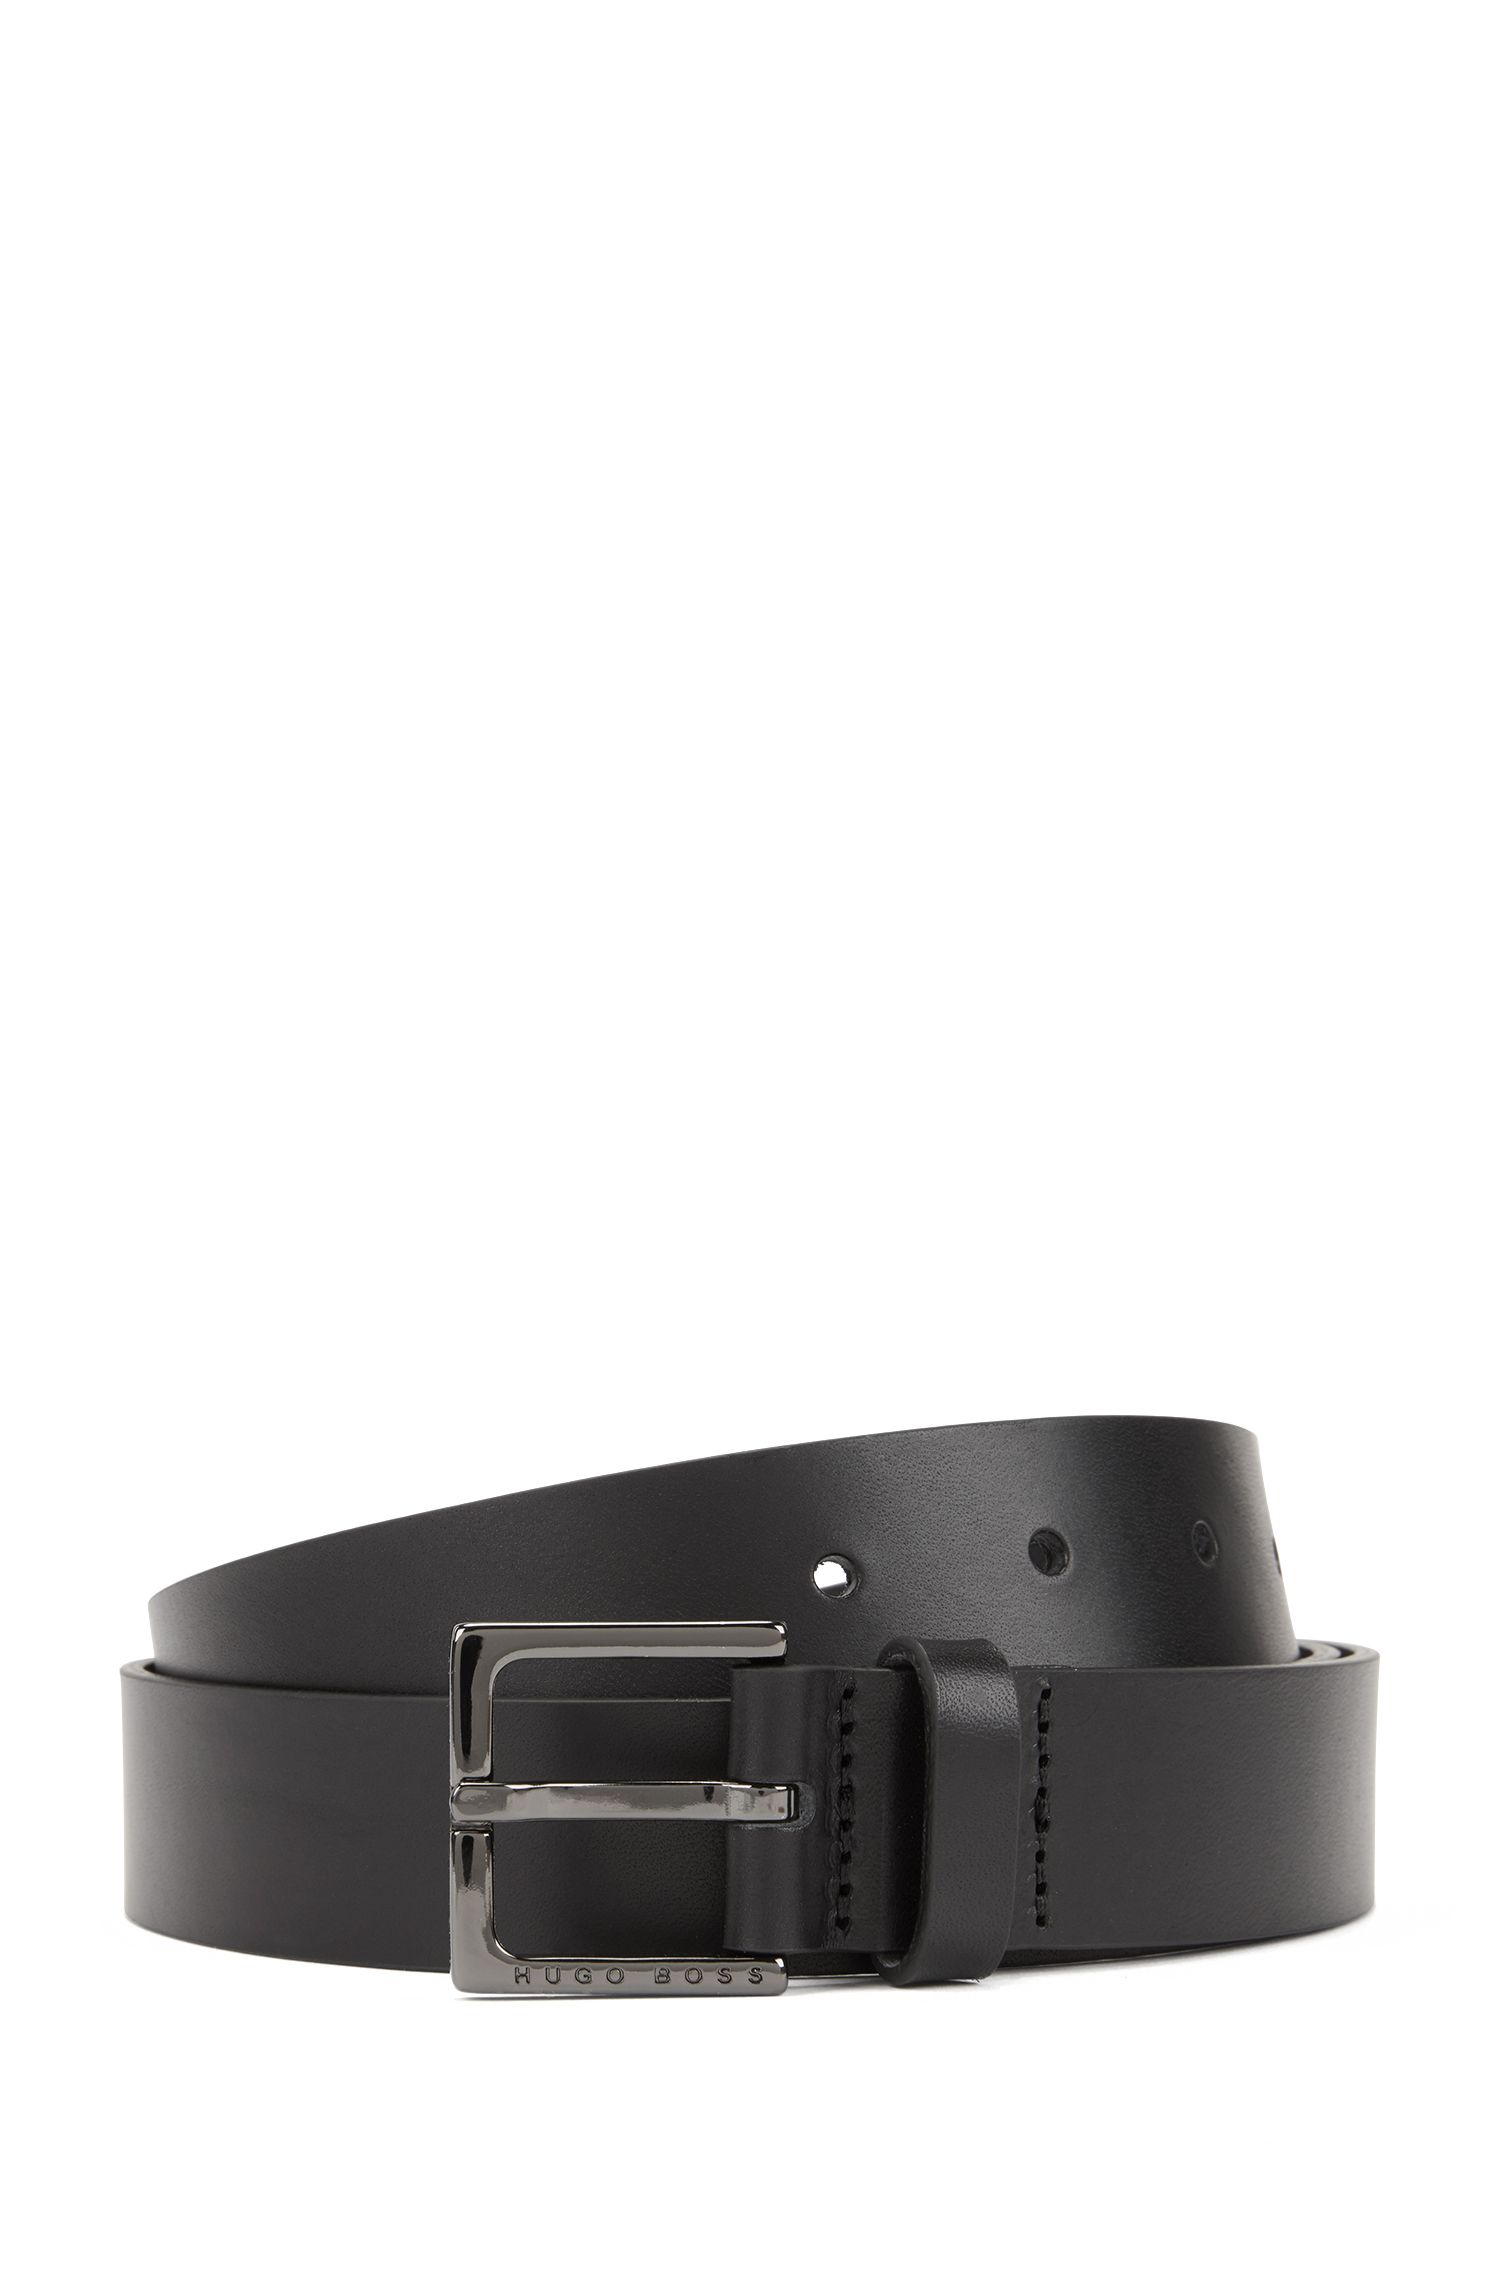 Leather belt with polished gunmetal buckle, Black